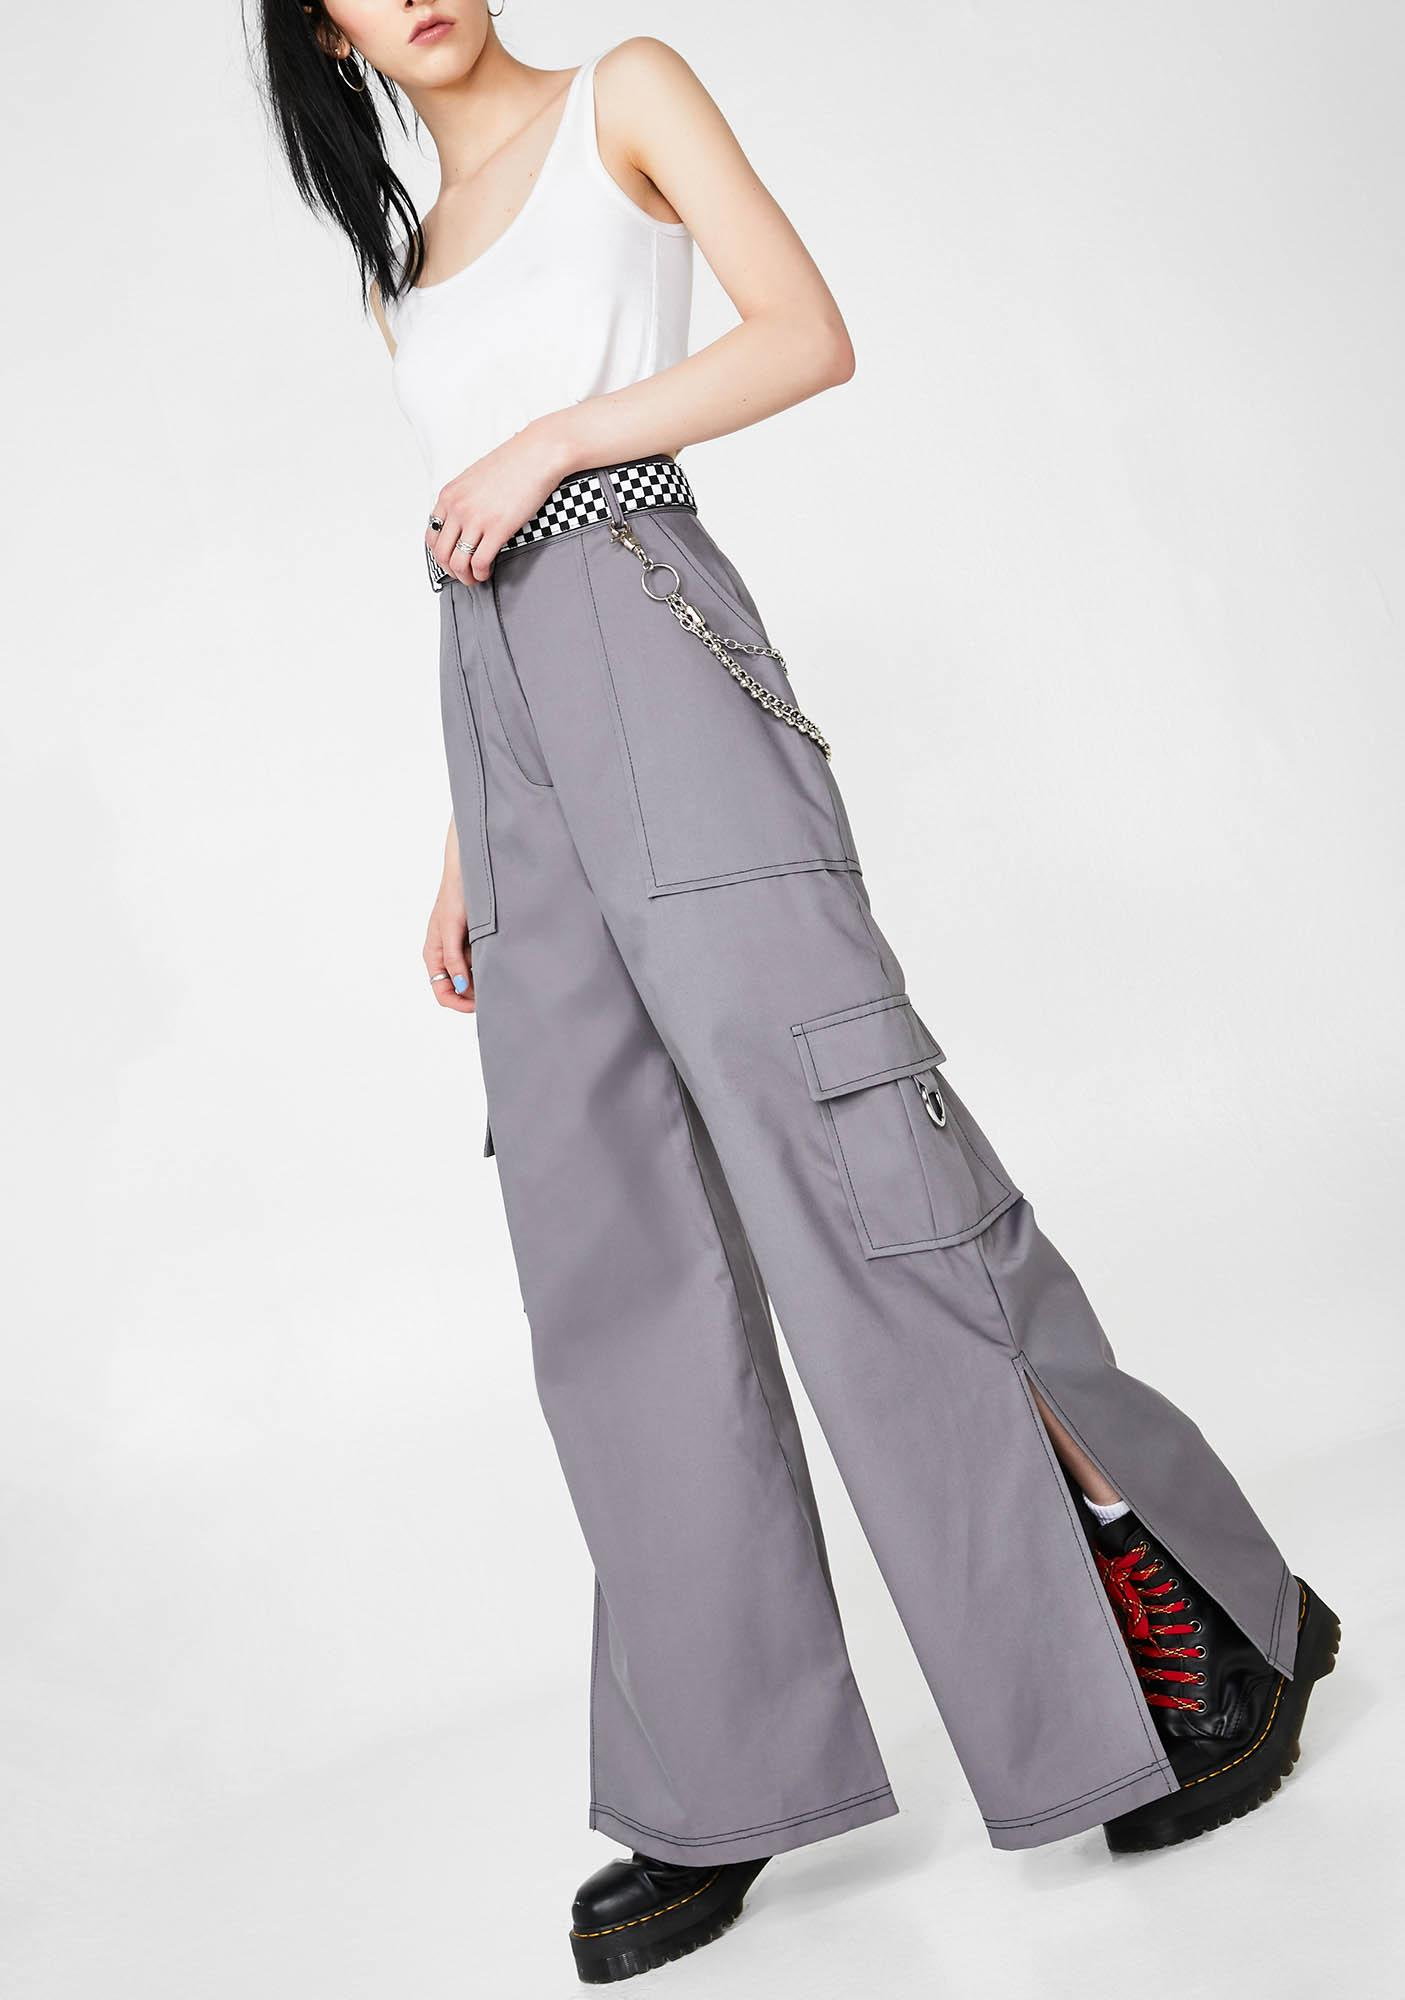 The Ragged Priest Stoned Destiny Pants